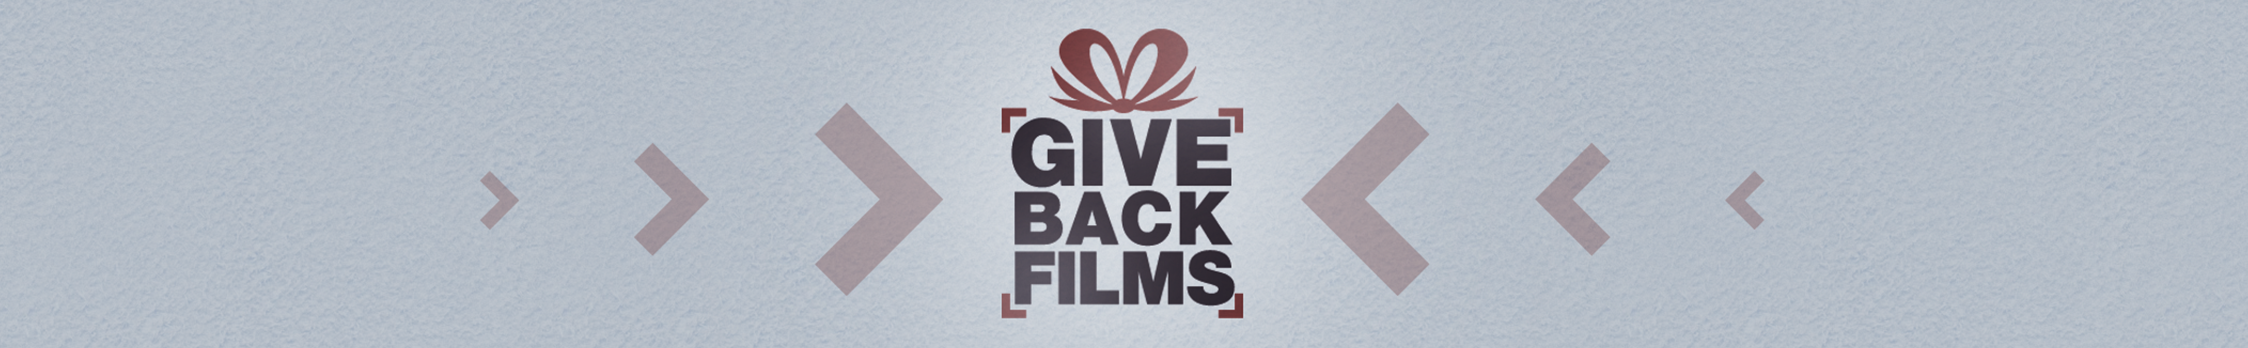 Give Back Films